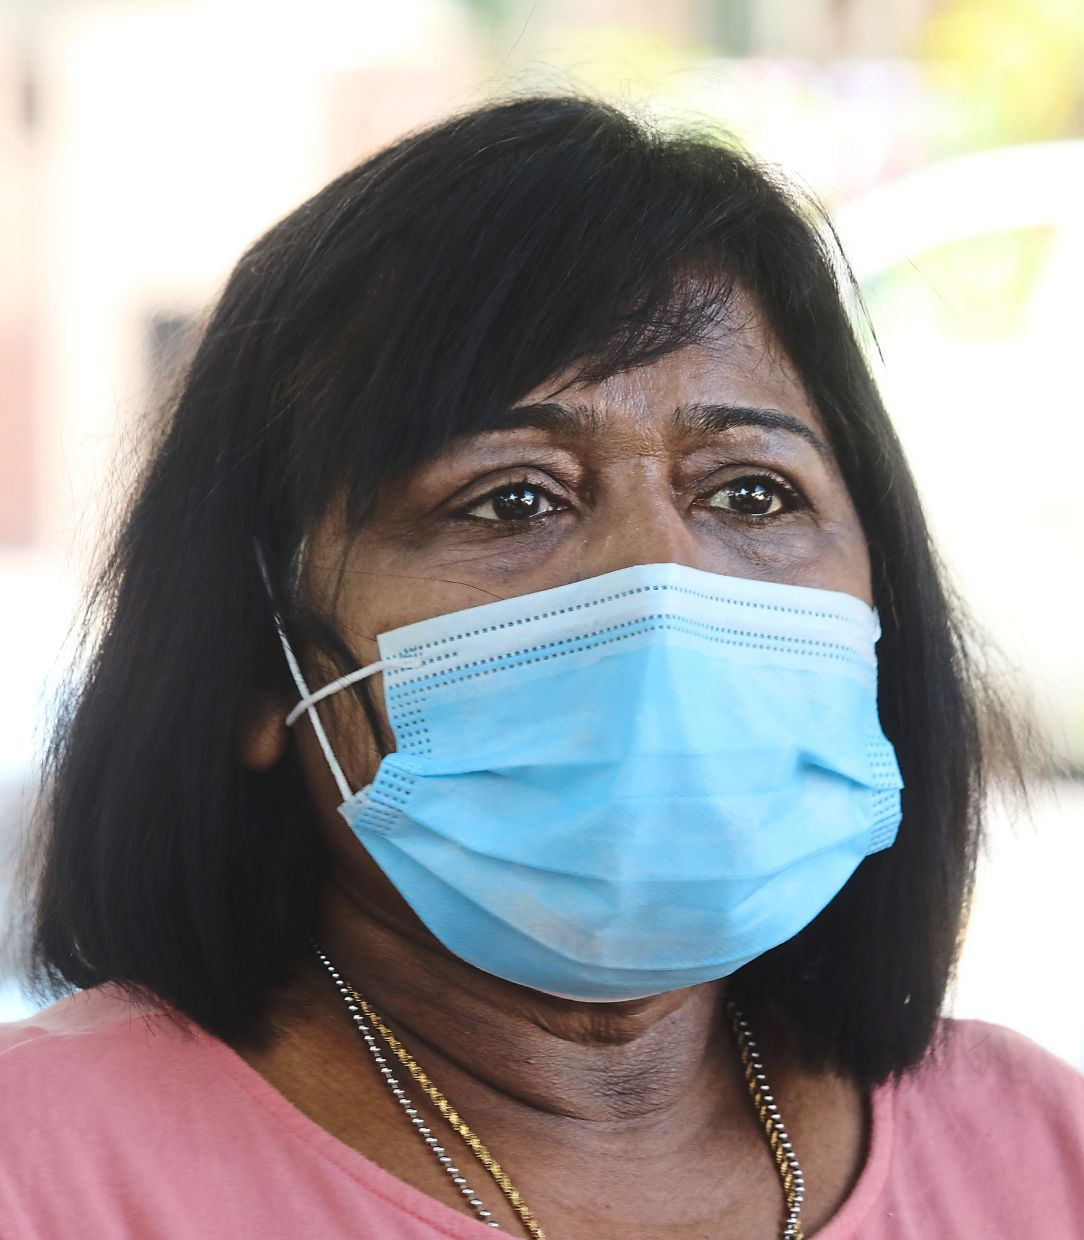 Vimala says she has been told that having eight rooms in a house is permitted.